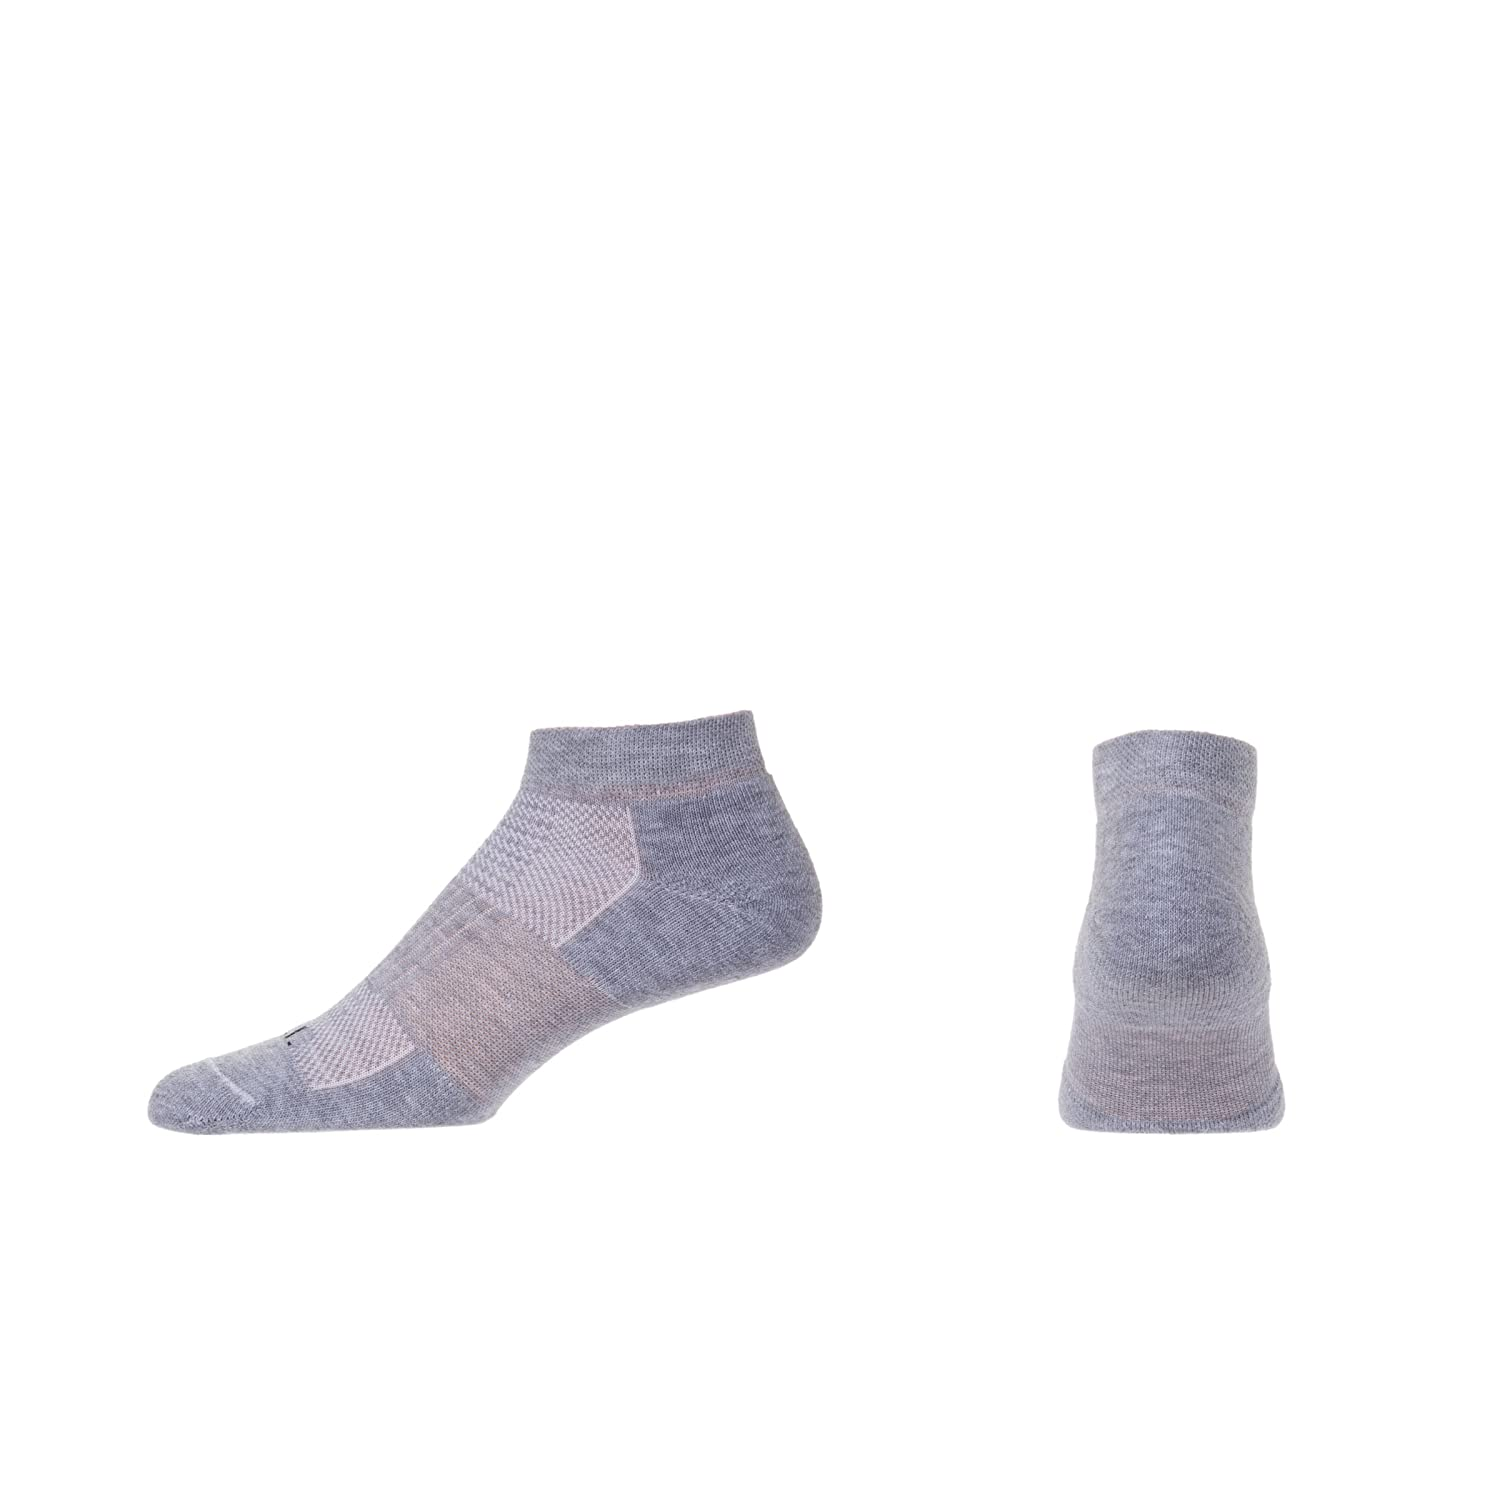 Casual Comfort No-Show Socks C.S.I 3-pair Made in the USA